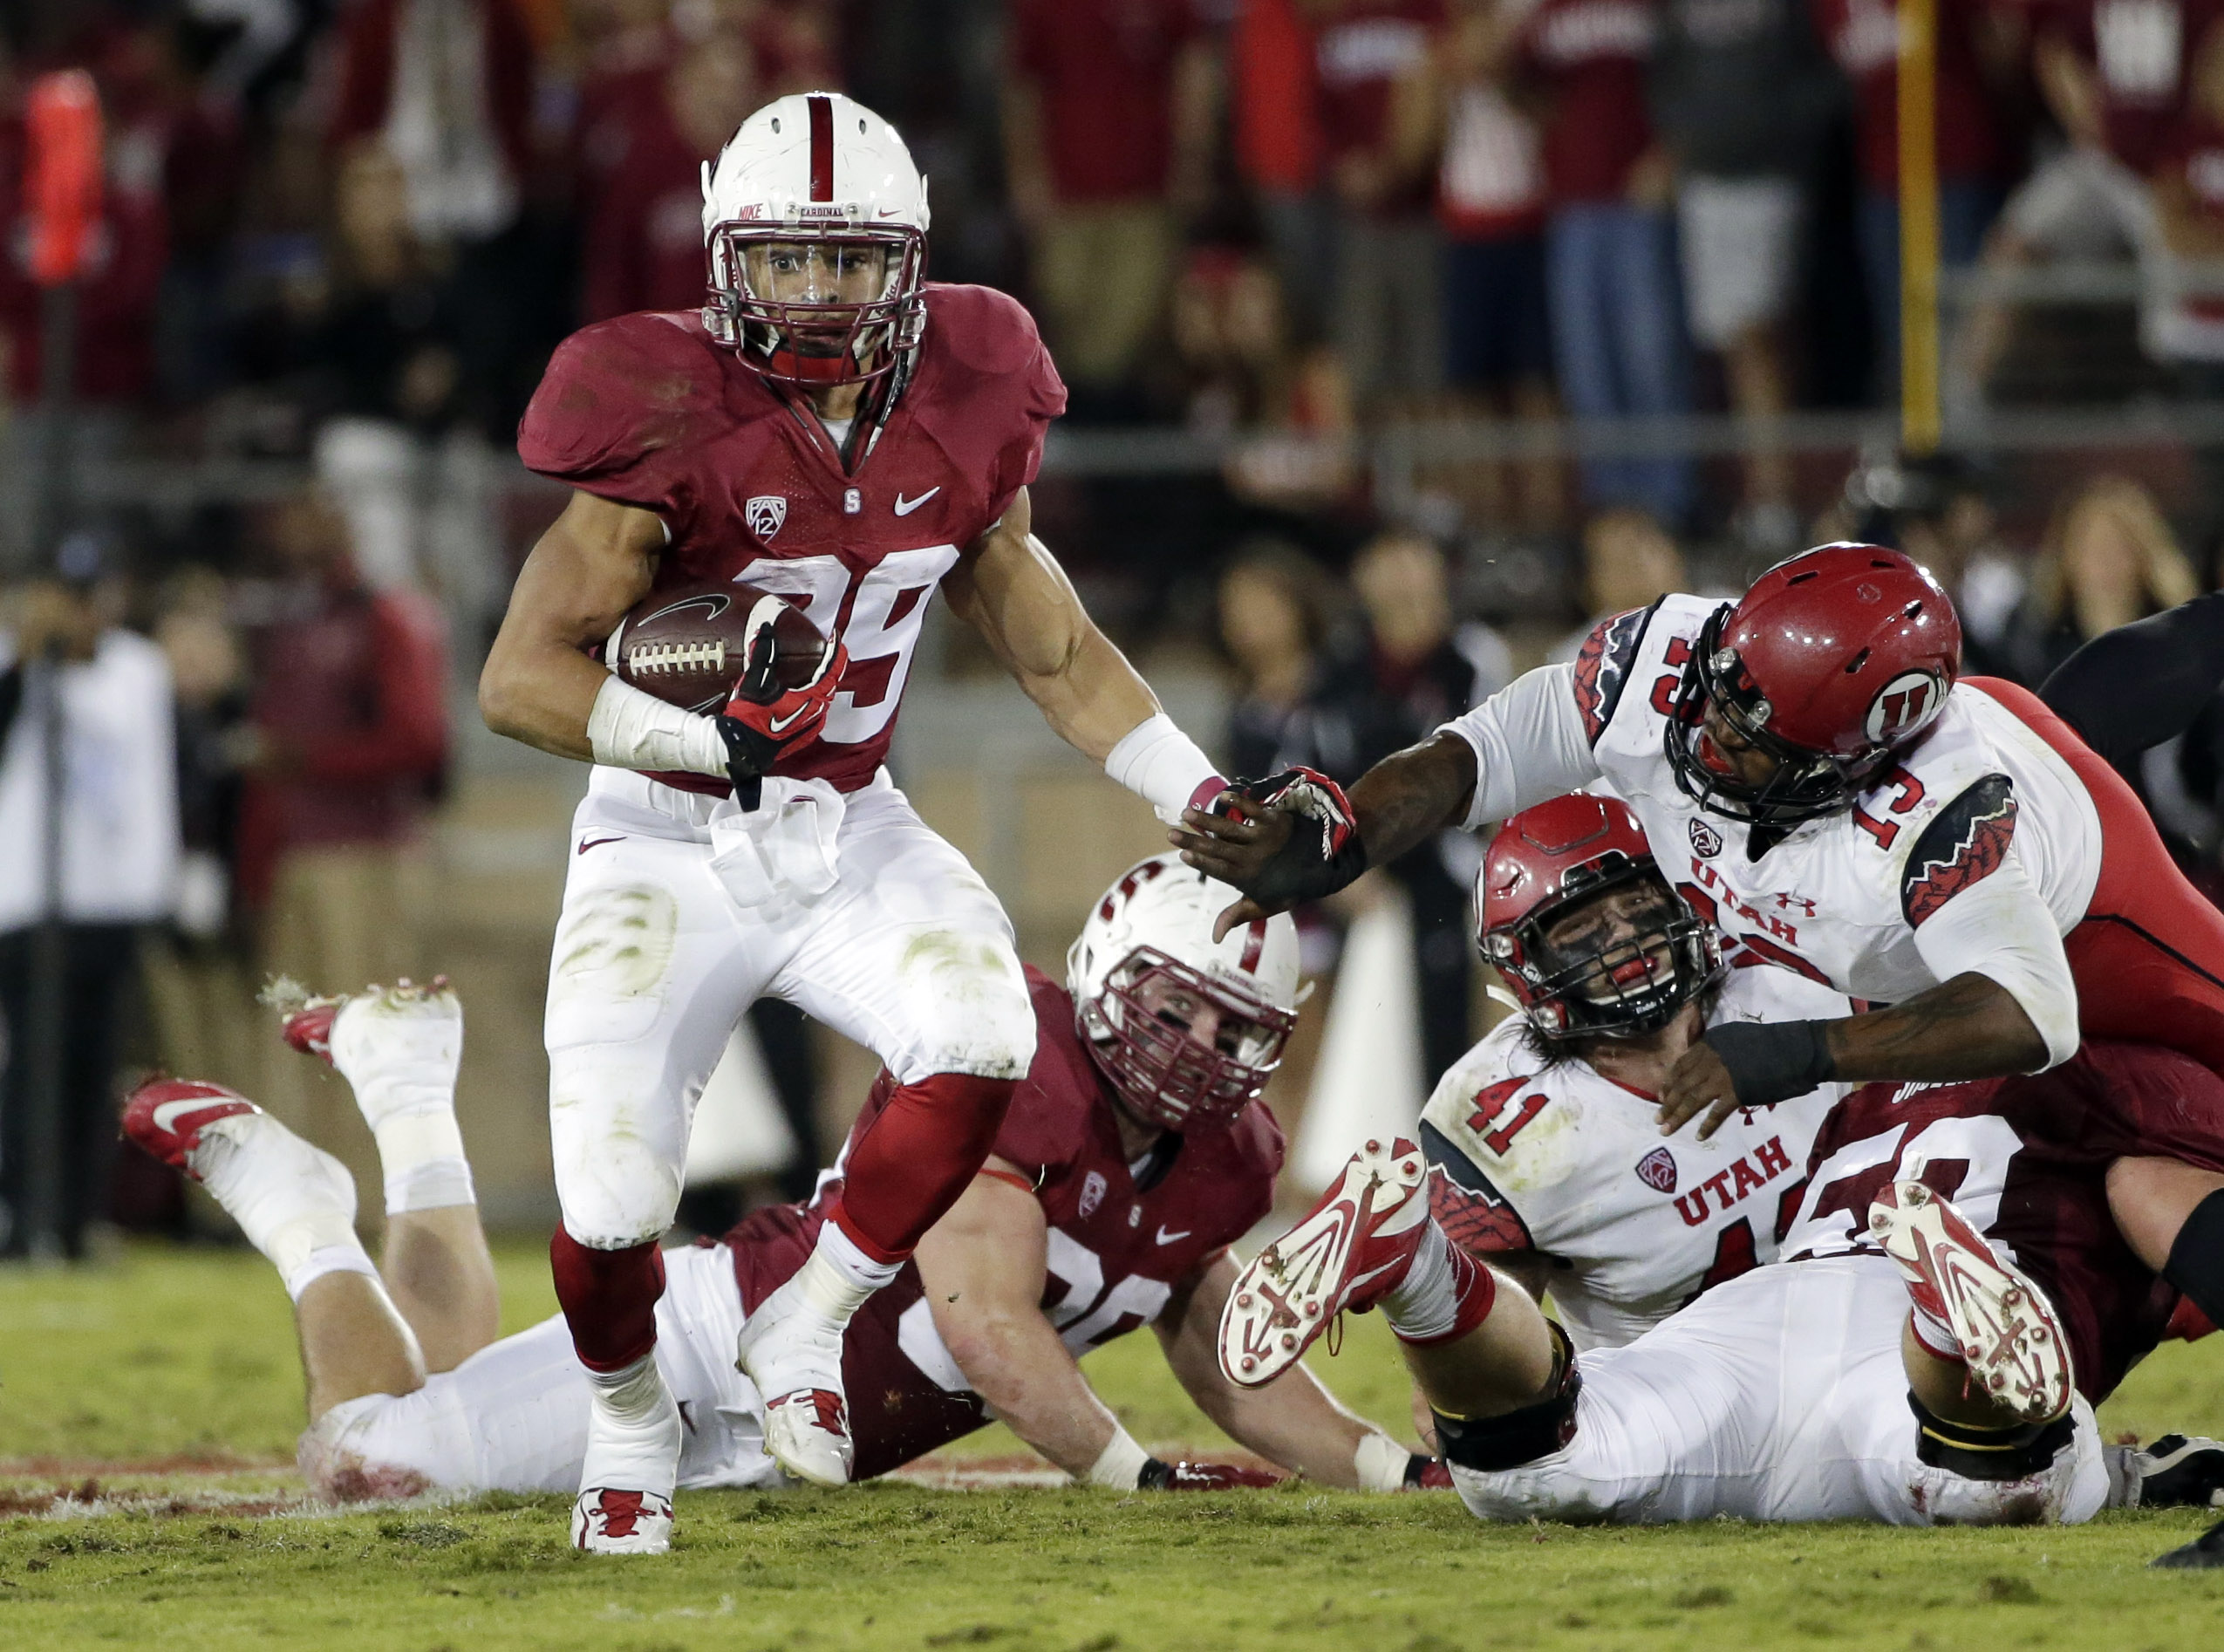 Stanford running back Kelsey Young runs against Utah during the second half of an NCAA college football game on Saturday, Nov. 15, 2014, in Stanford, Calif. Utah won 20-17 in overtime. (AP Photo/Marcio Jose Sanchez)